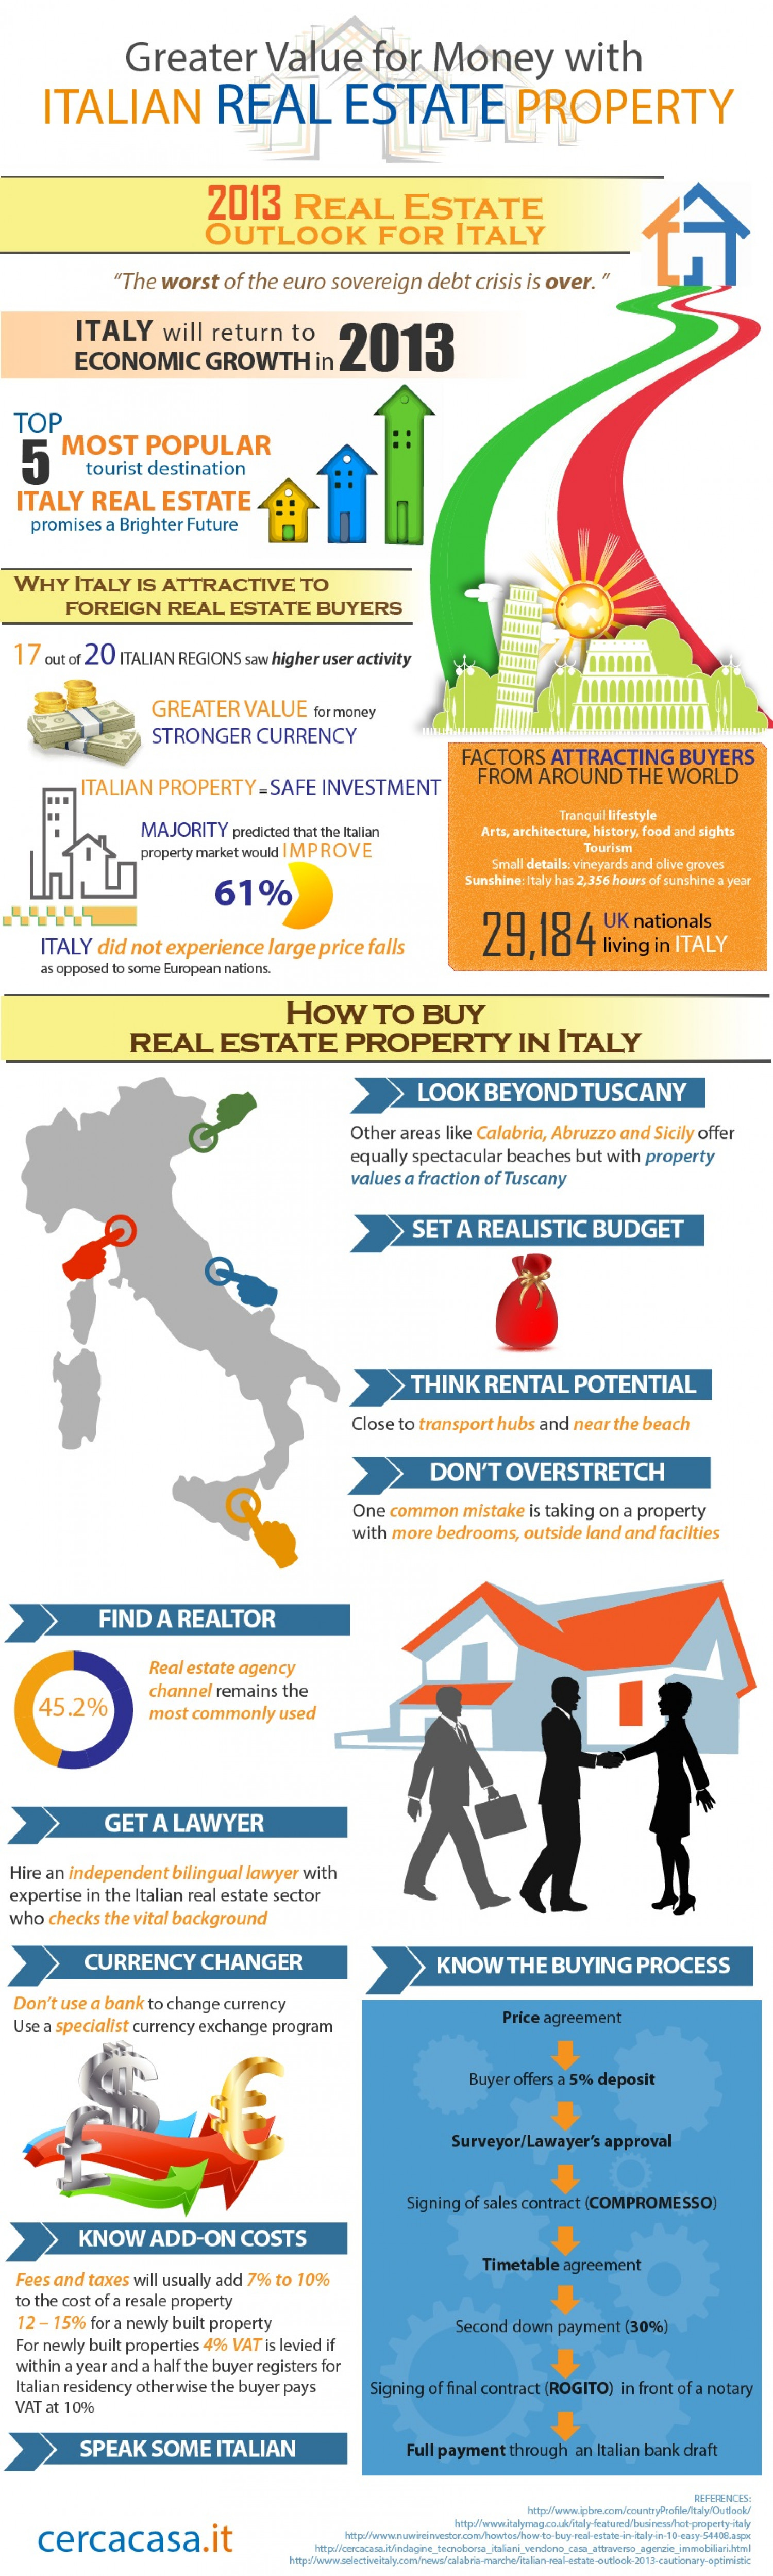 Greater Value for Money with Italian Real Estate Property Infographic